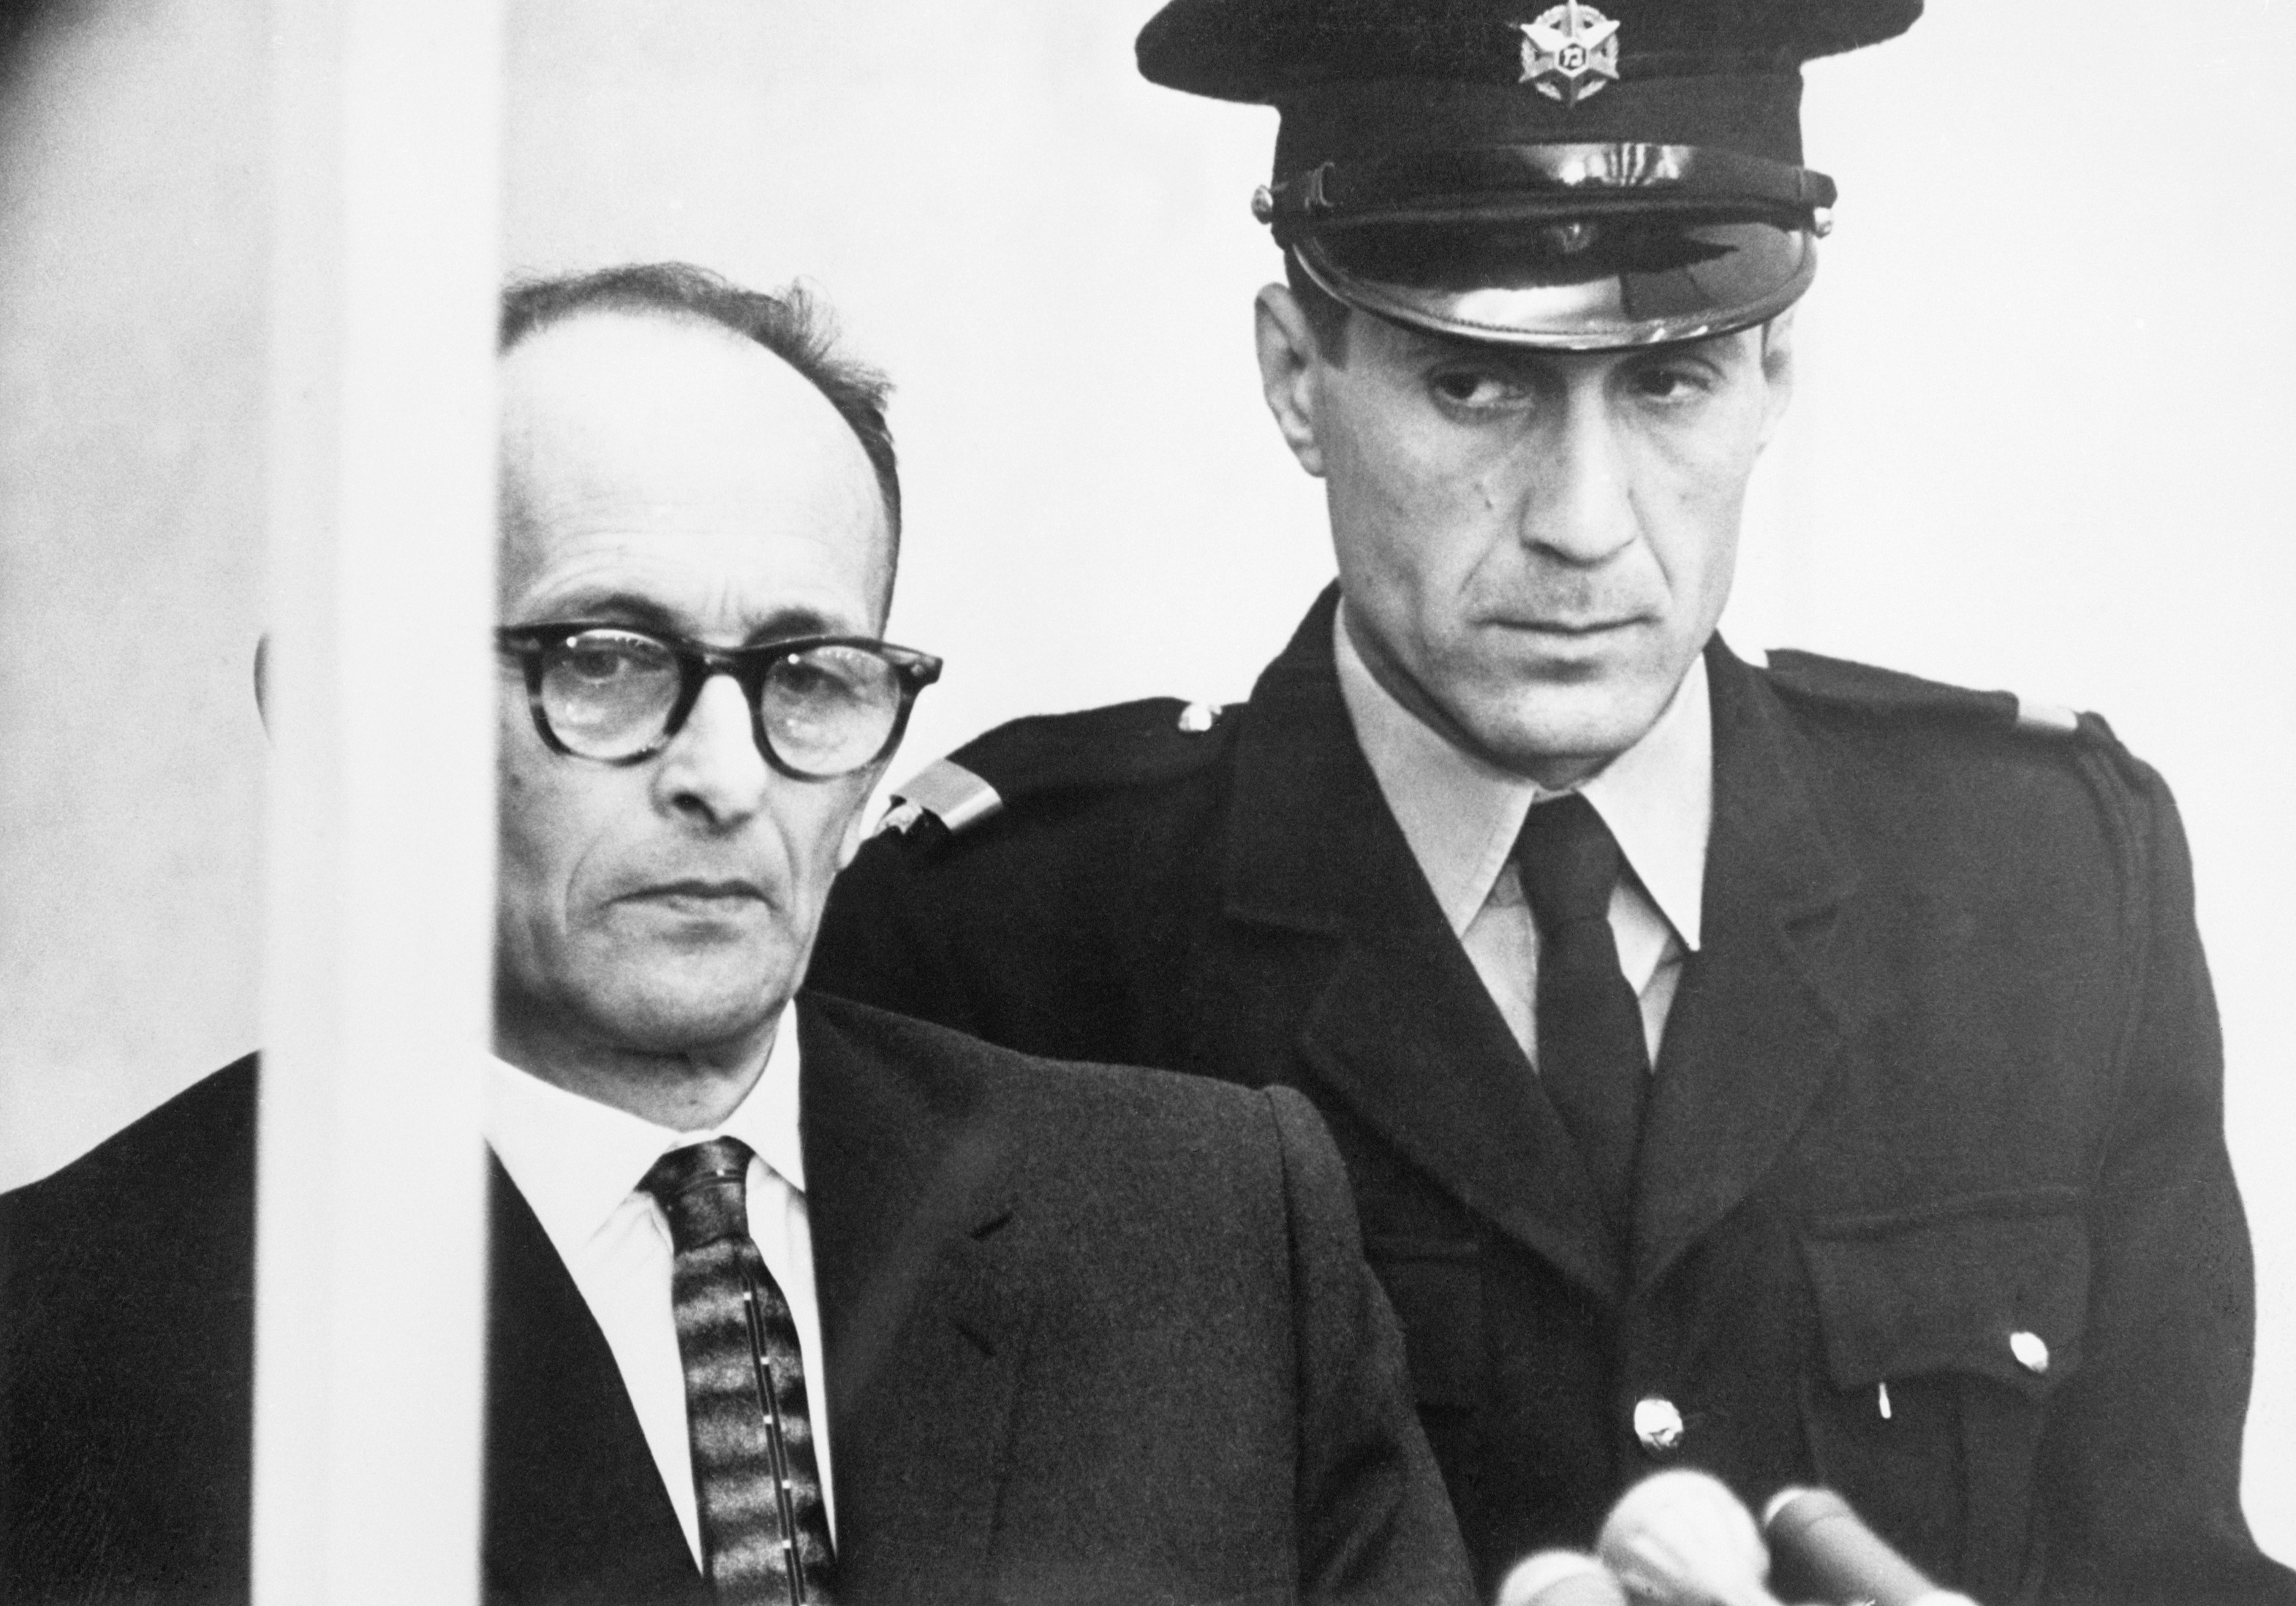 11 Apr 1961, Jerusalem, Israel --- Original caption: 4/11/1961-Jerusalem, Israel- A thin faced Adolf Eichmann listens to the reading of a 15 count indictment, accusing him of the murder of millions of Jews during World War II, as a guard stands beside him (R), April 11. The reading of the charges at the trial's opening took an hour and 15 minutes. --- Image by © Bettmann/CORBIS